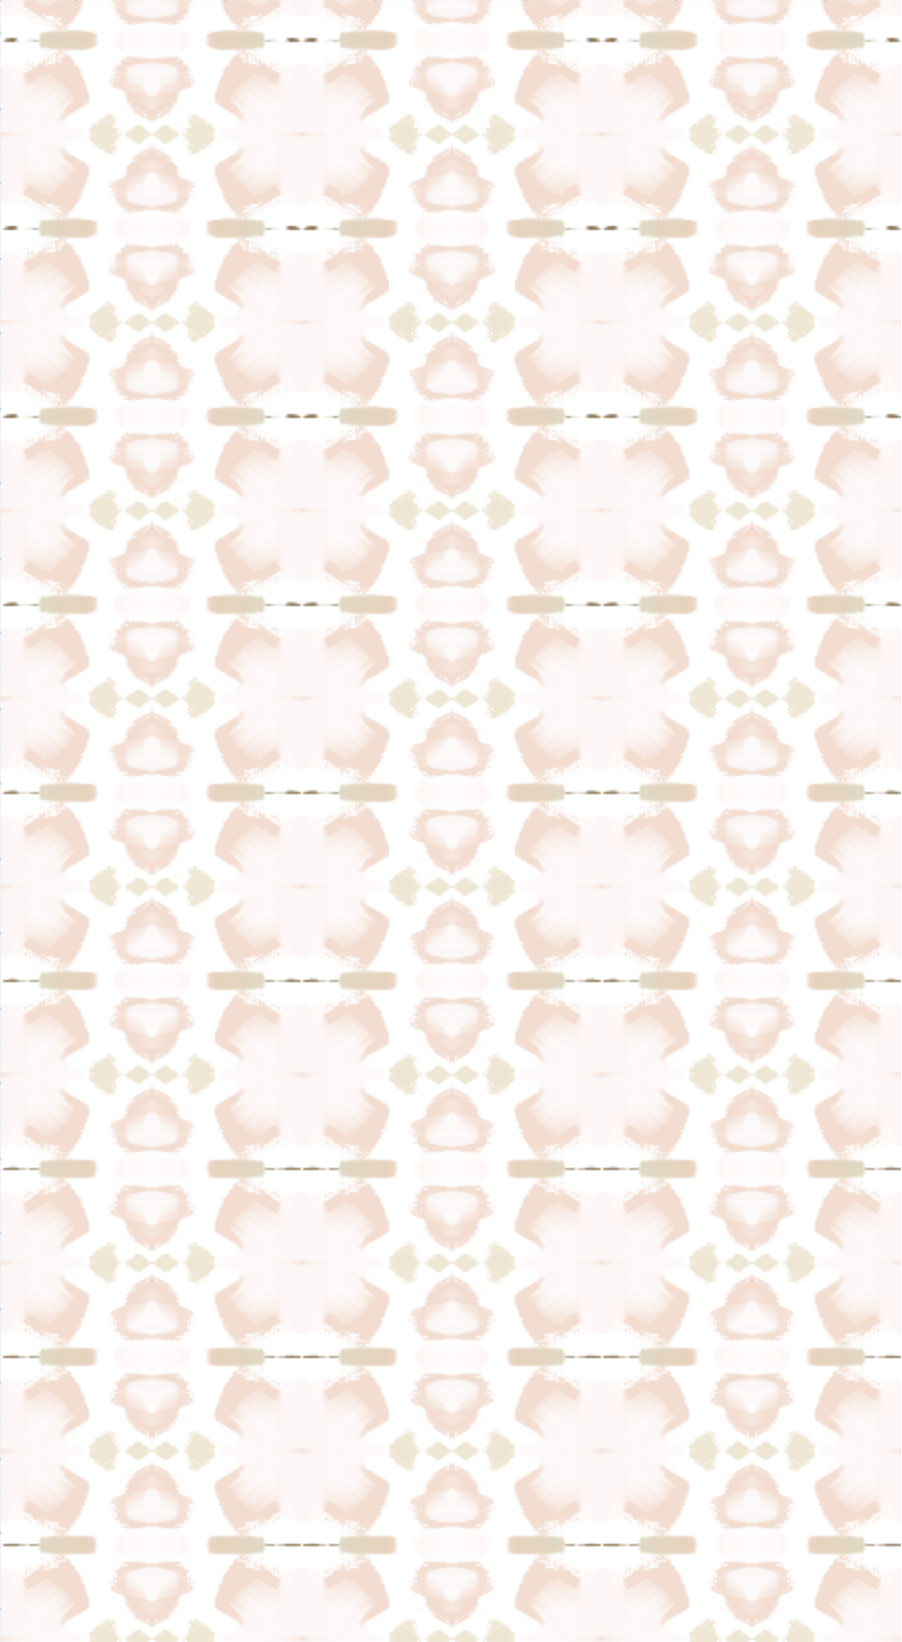 blush pink wallpaper, pink and beige wallpaper, wallpaper decor blush, blush wall paint color, beige and pale pink wallpaper, pale pink wallpaper